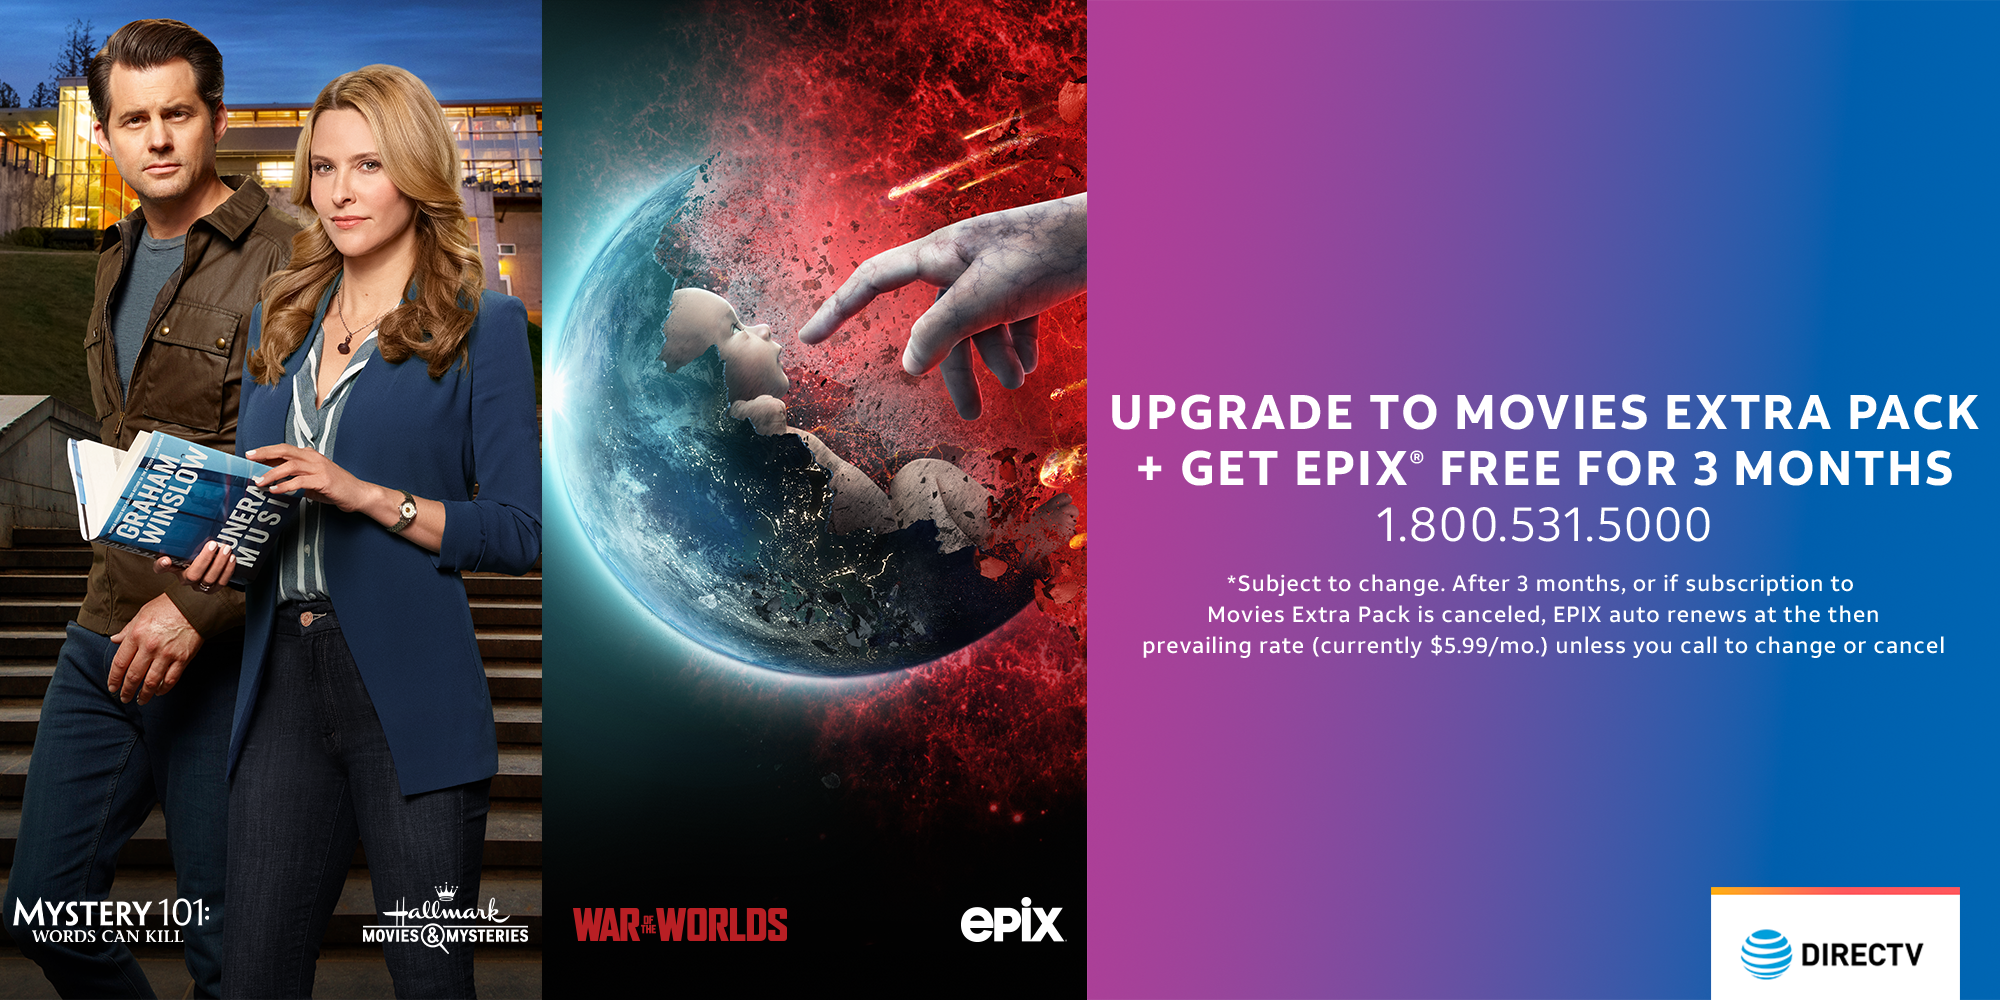 Upgrade to Movies Extra Pack for $4.99/mo. and get EPIX free for 3 months!